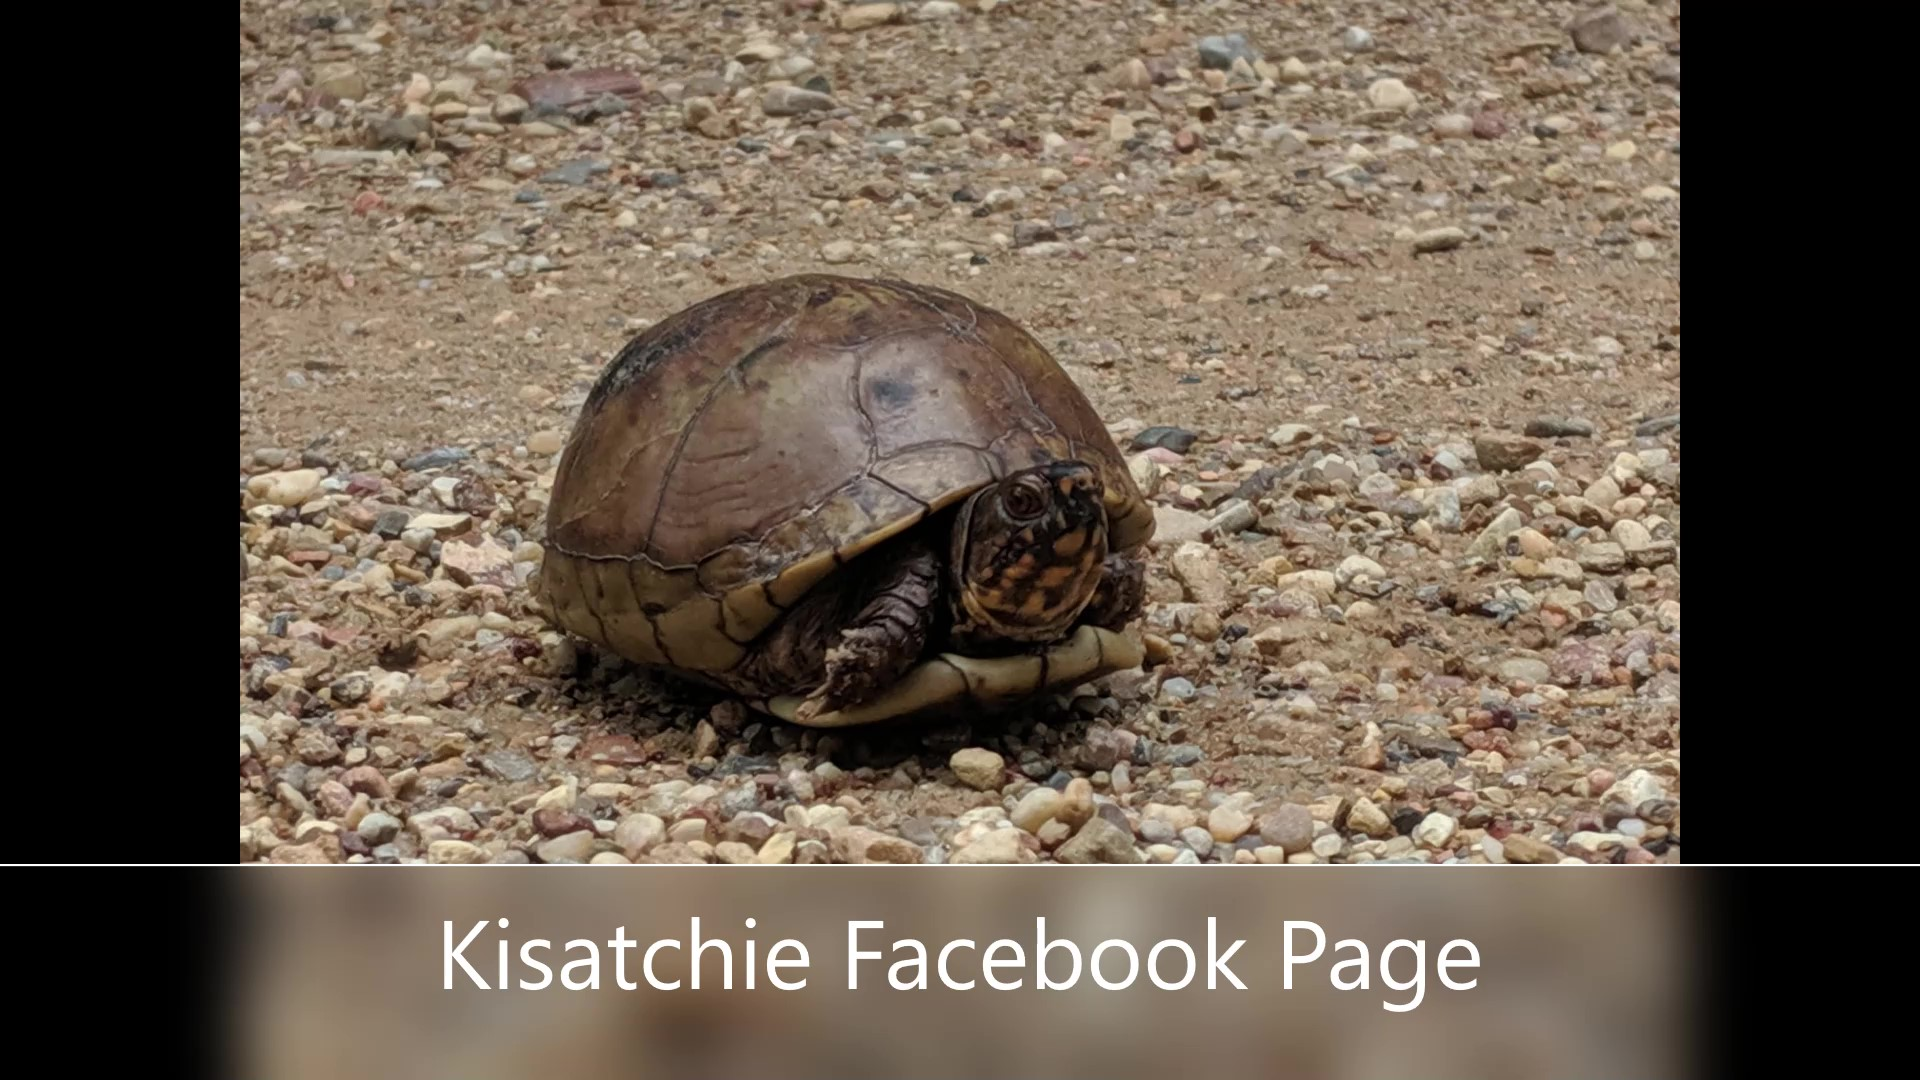 Photo of small tortoise